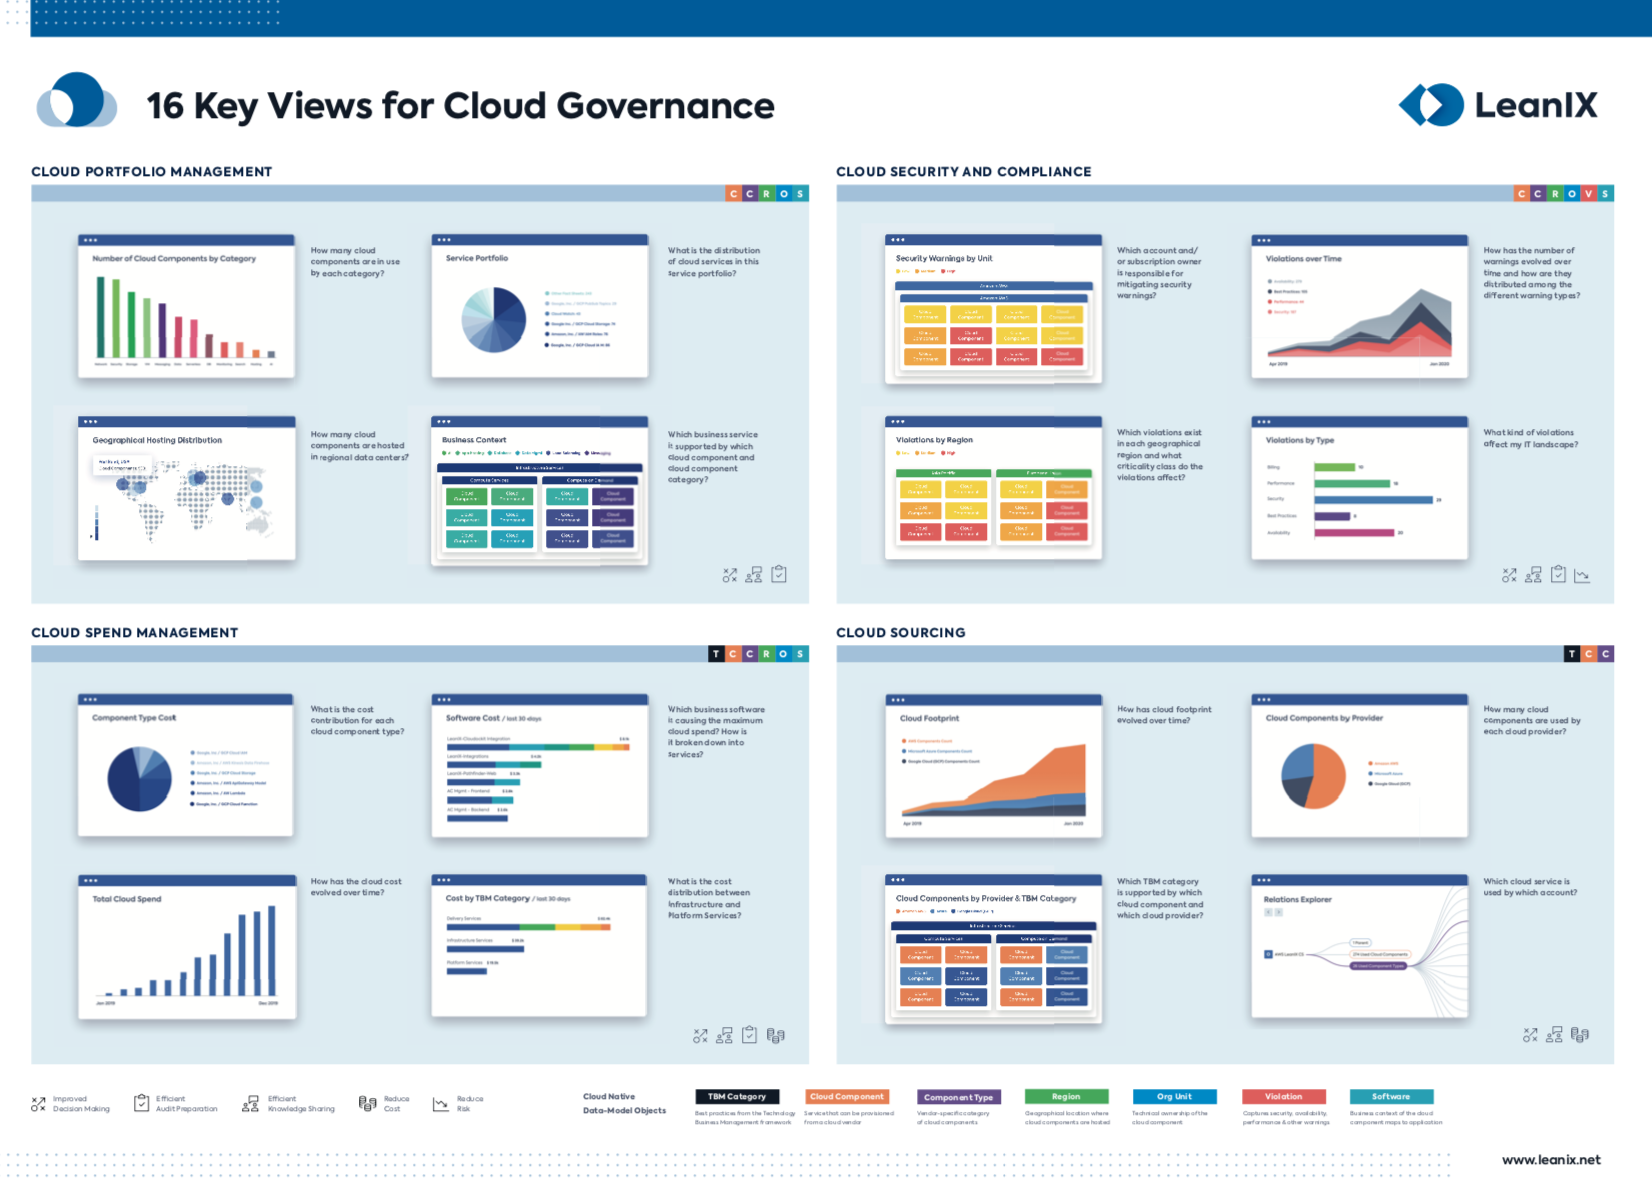 16 Key Views for Cloud Governance